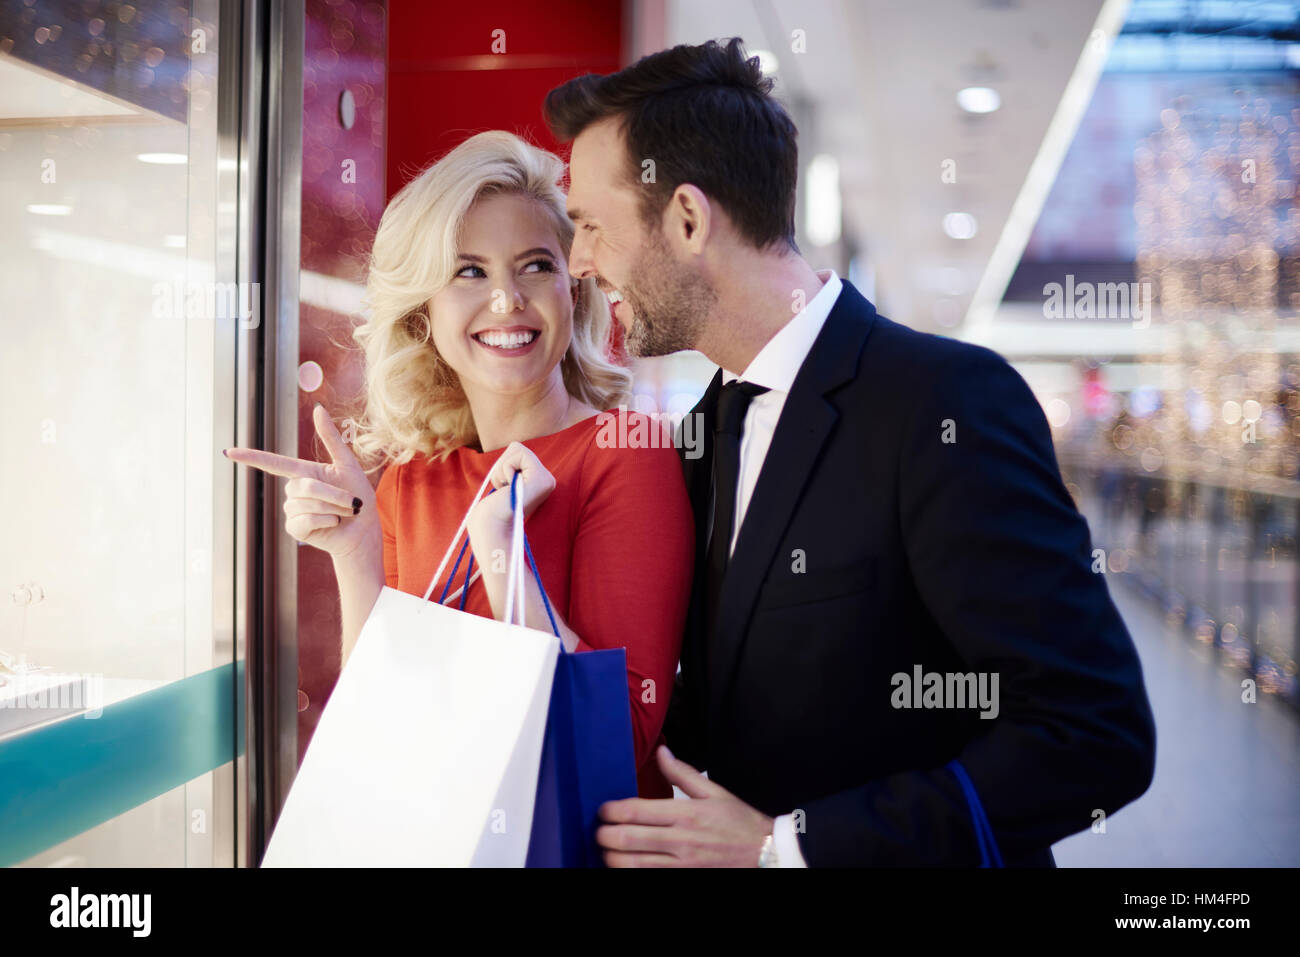 Two adults gazing at window shop - Stock Image